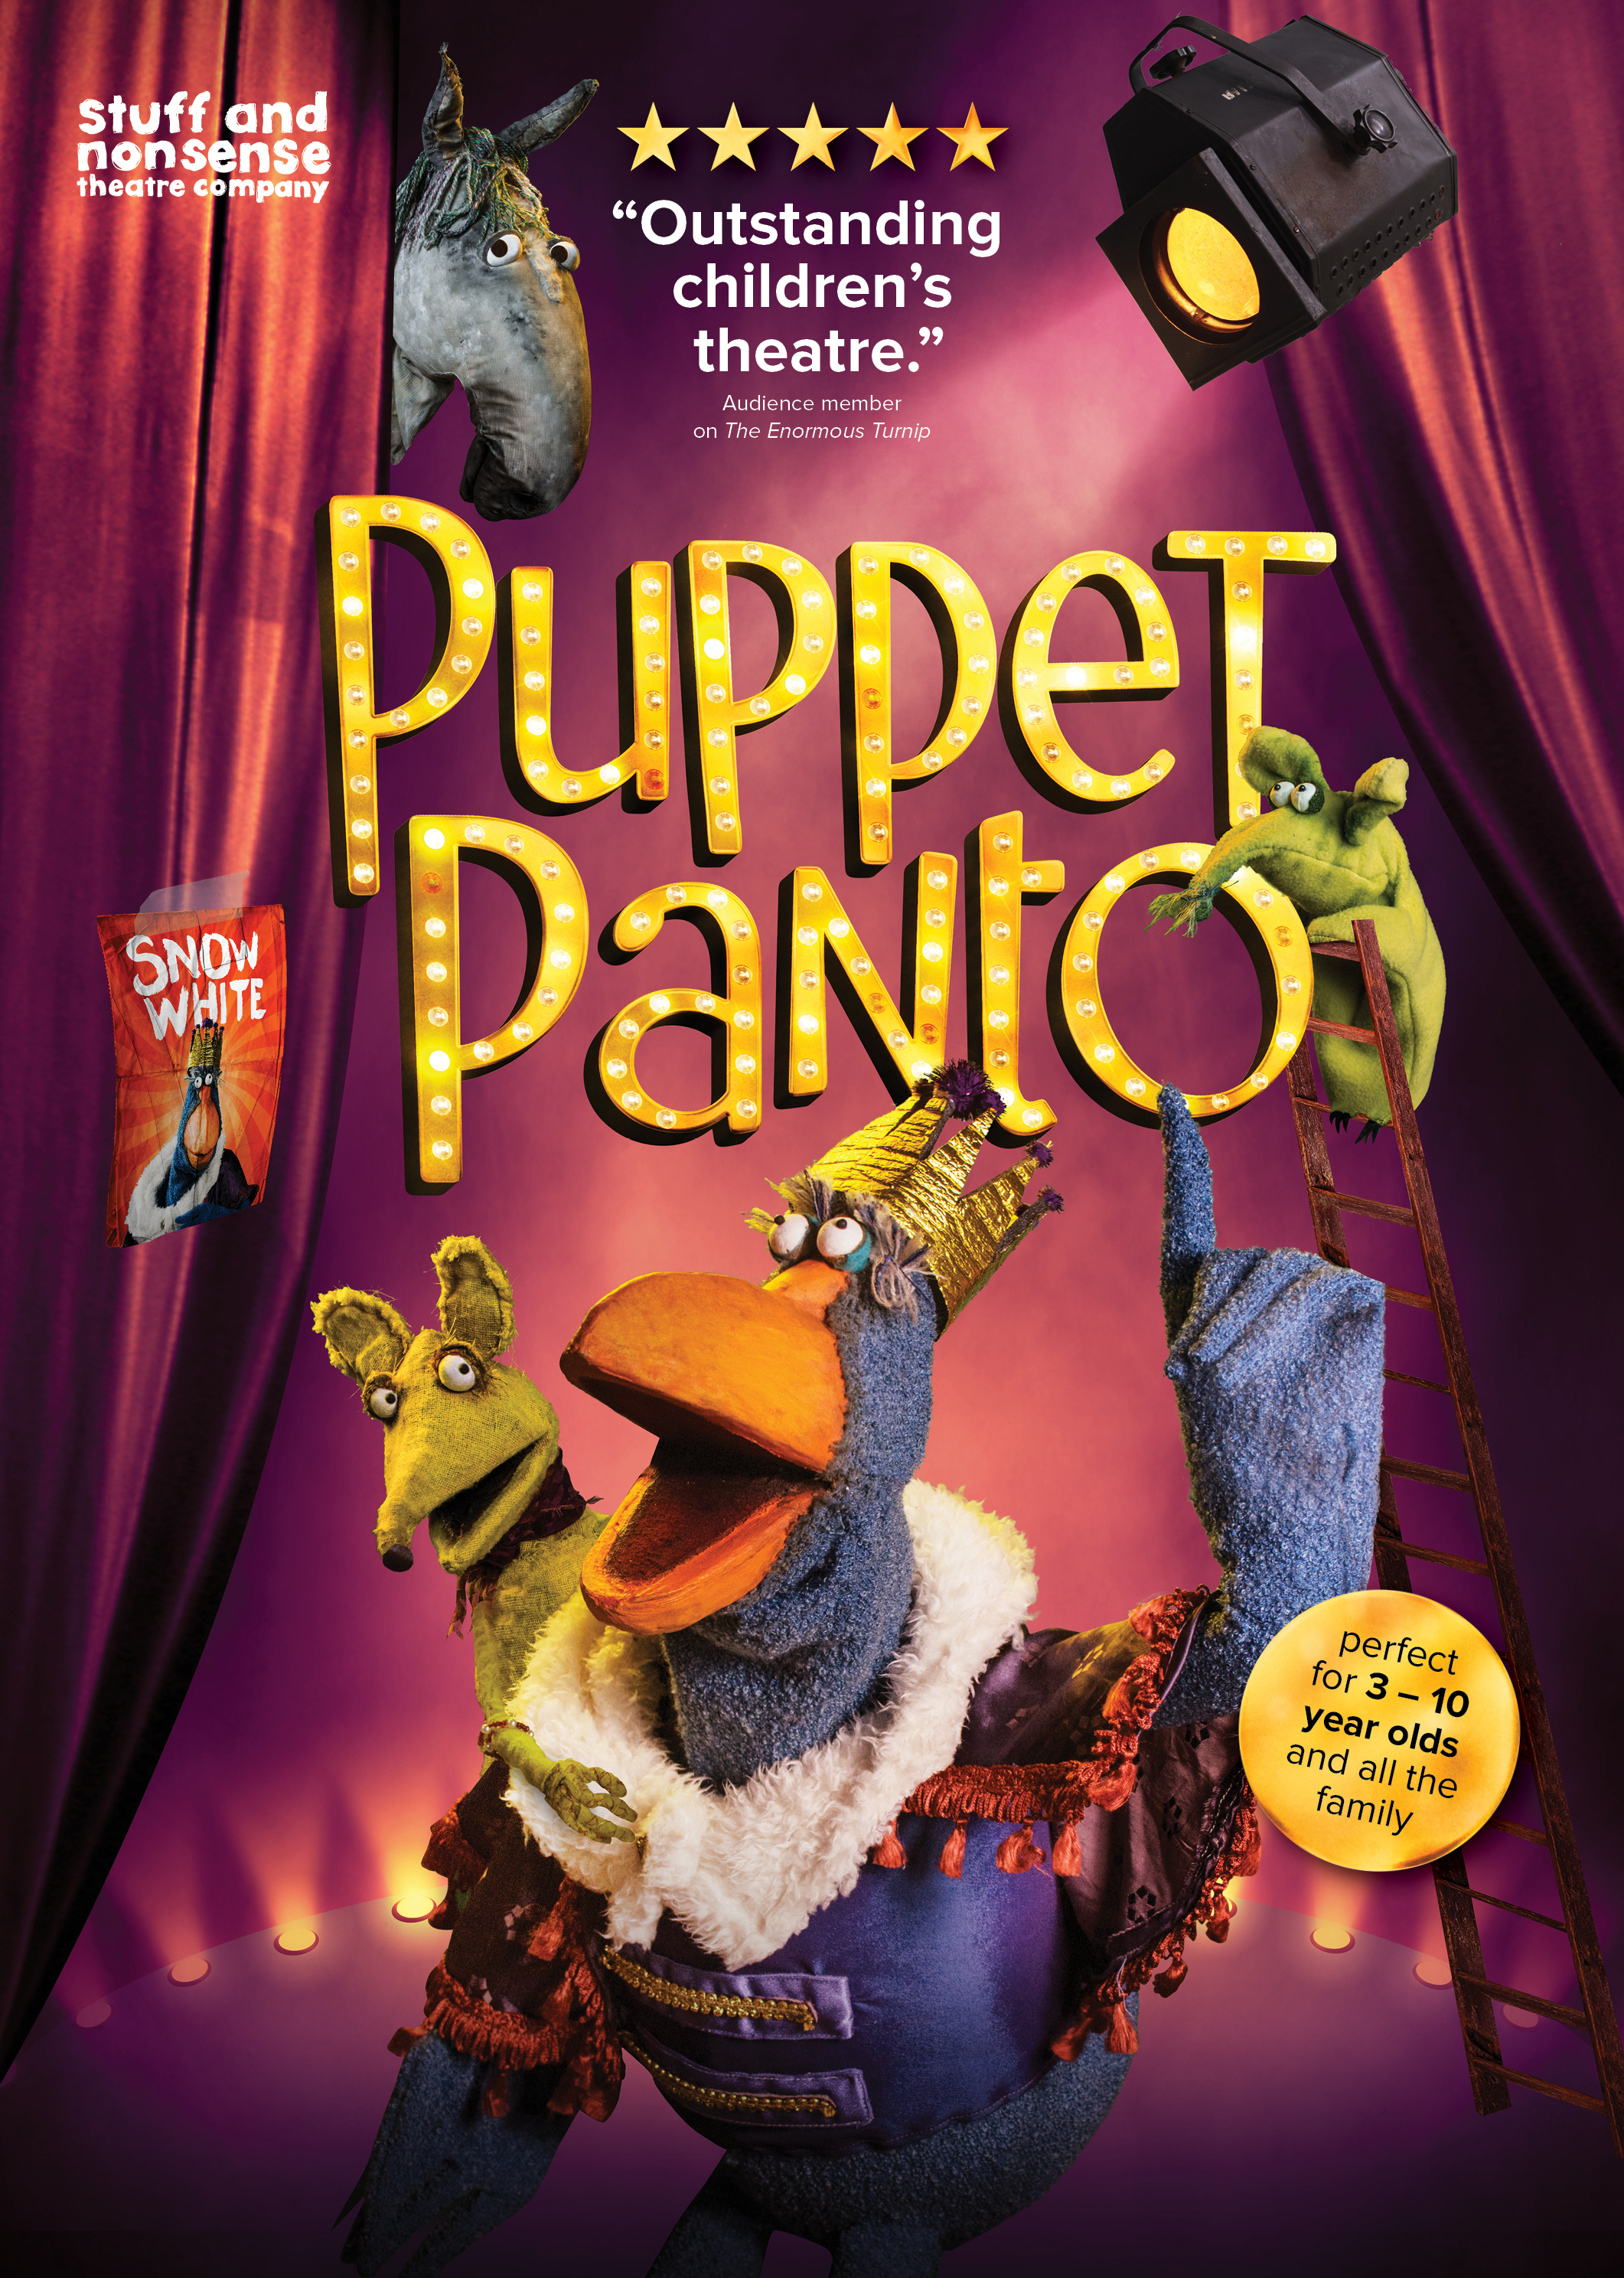 Puppet Panto Revealed